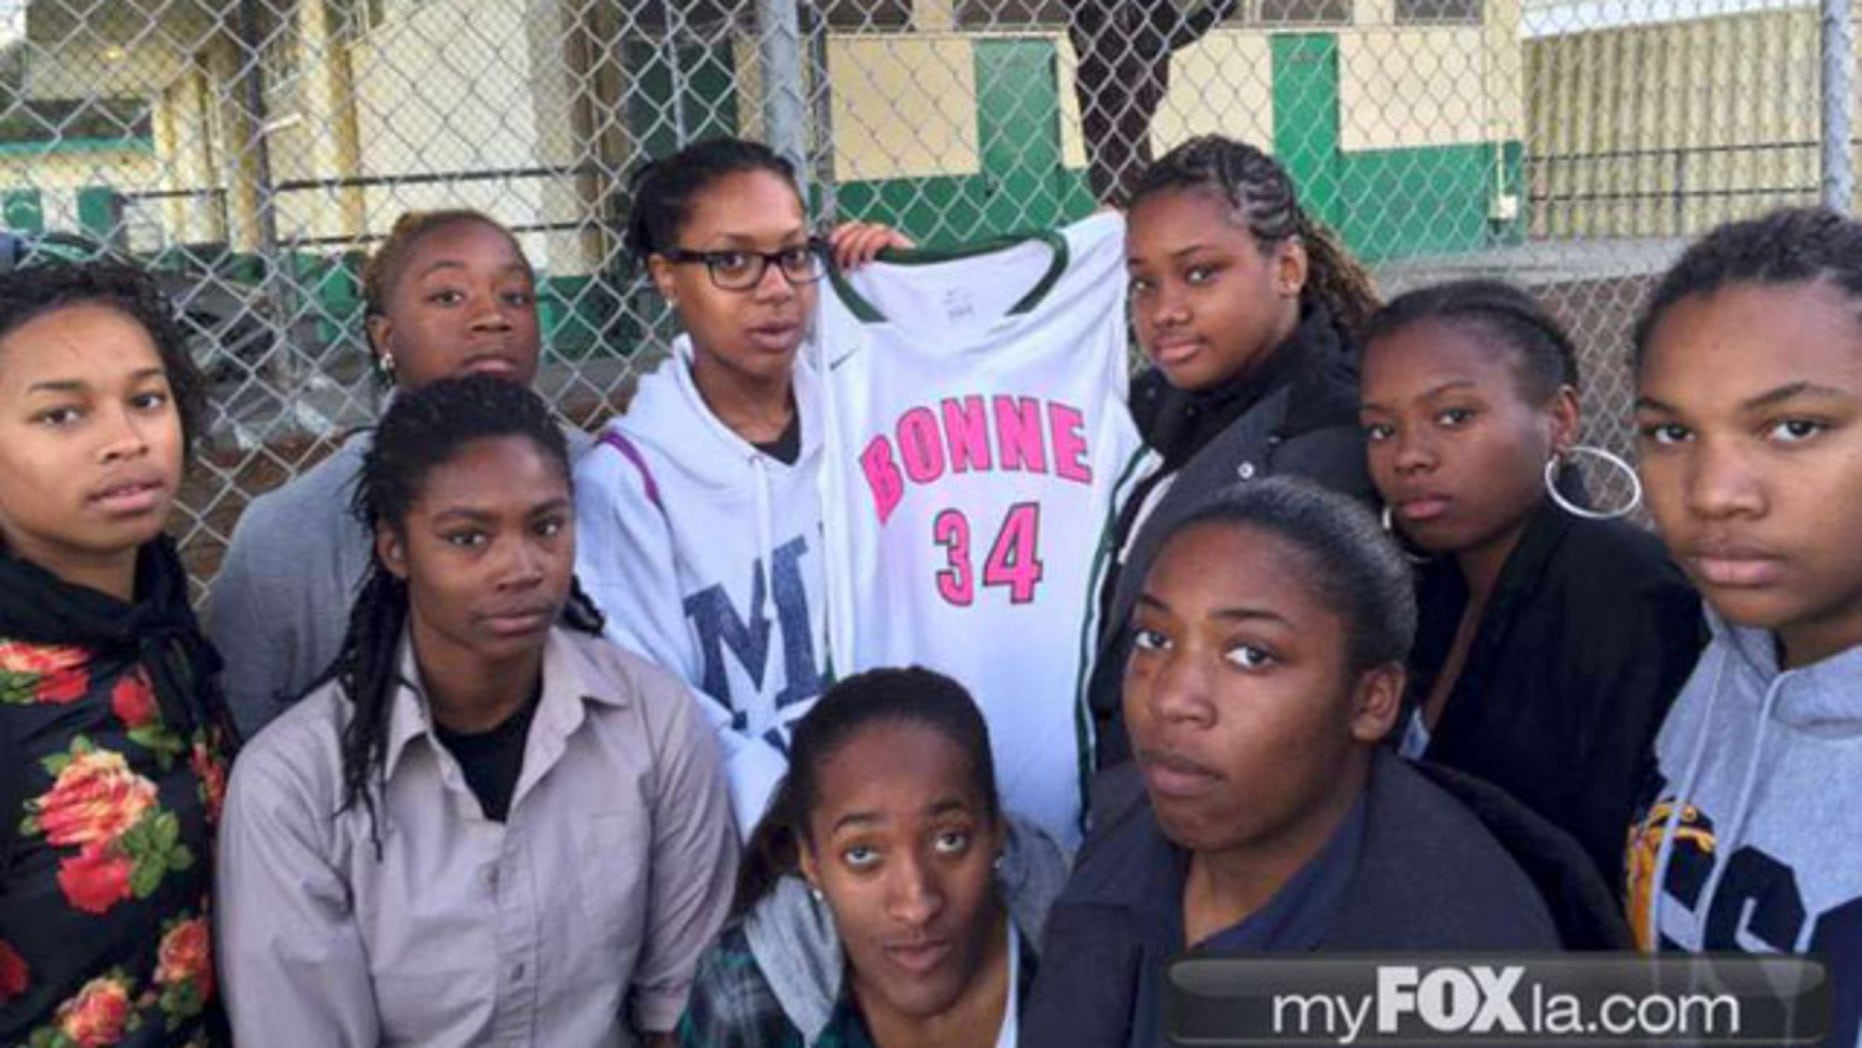 This photo, obtained by Fox affiliate KTTV, shows members of the Narbonne High School girl's basketball team with one of the pink-lettered jerseys worn as part of Breast Cancer Awareness Month.